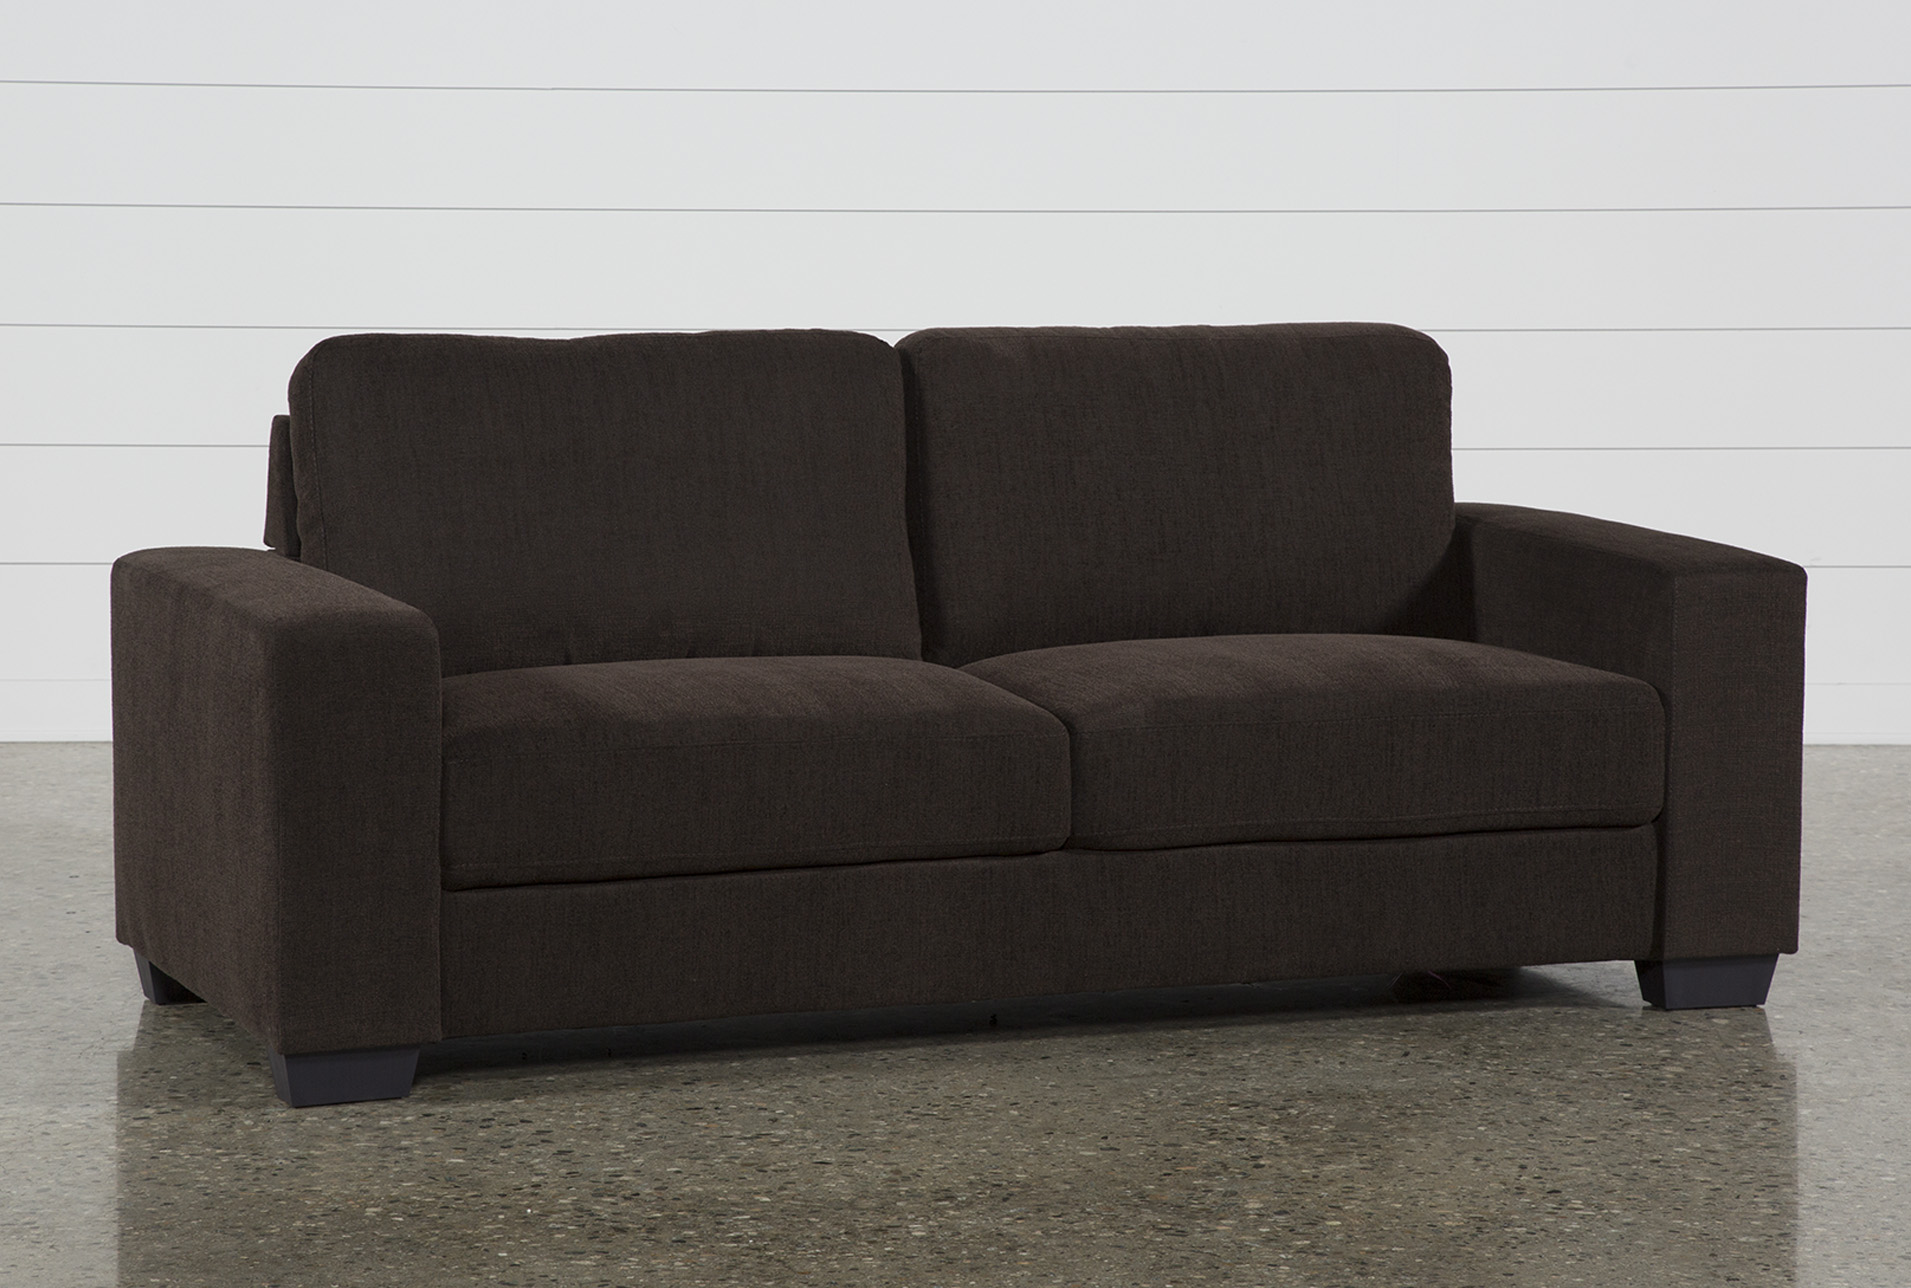 living es sofa upholstery cushions chocolate brown fabric shapeyourminds